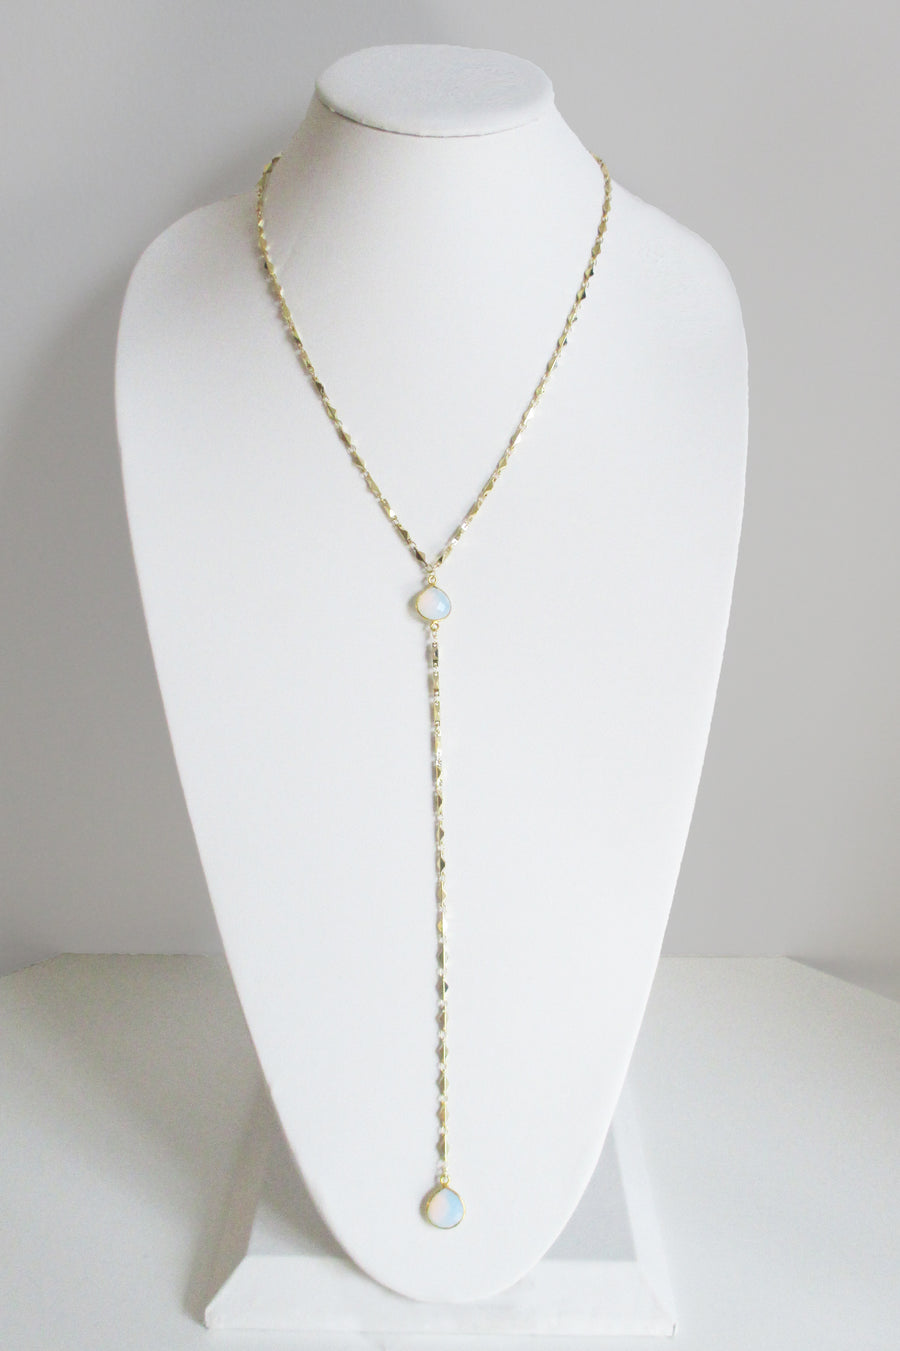 MG ARIANNA CECELIA Y NECKLACE WHITE OPAL